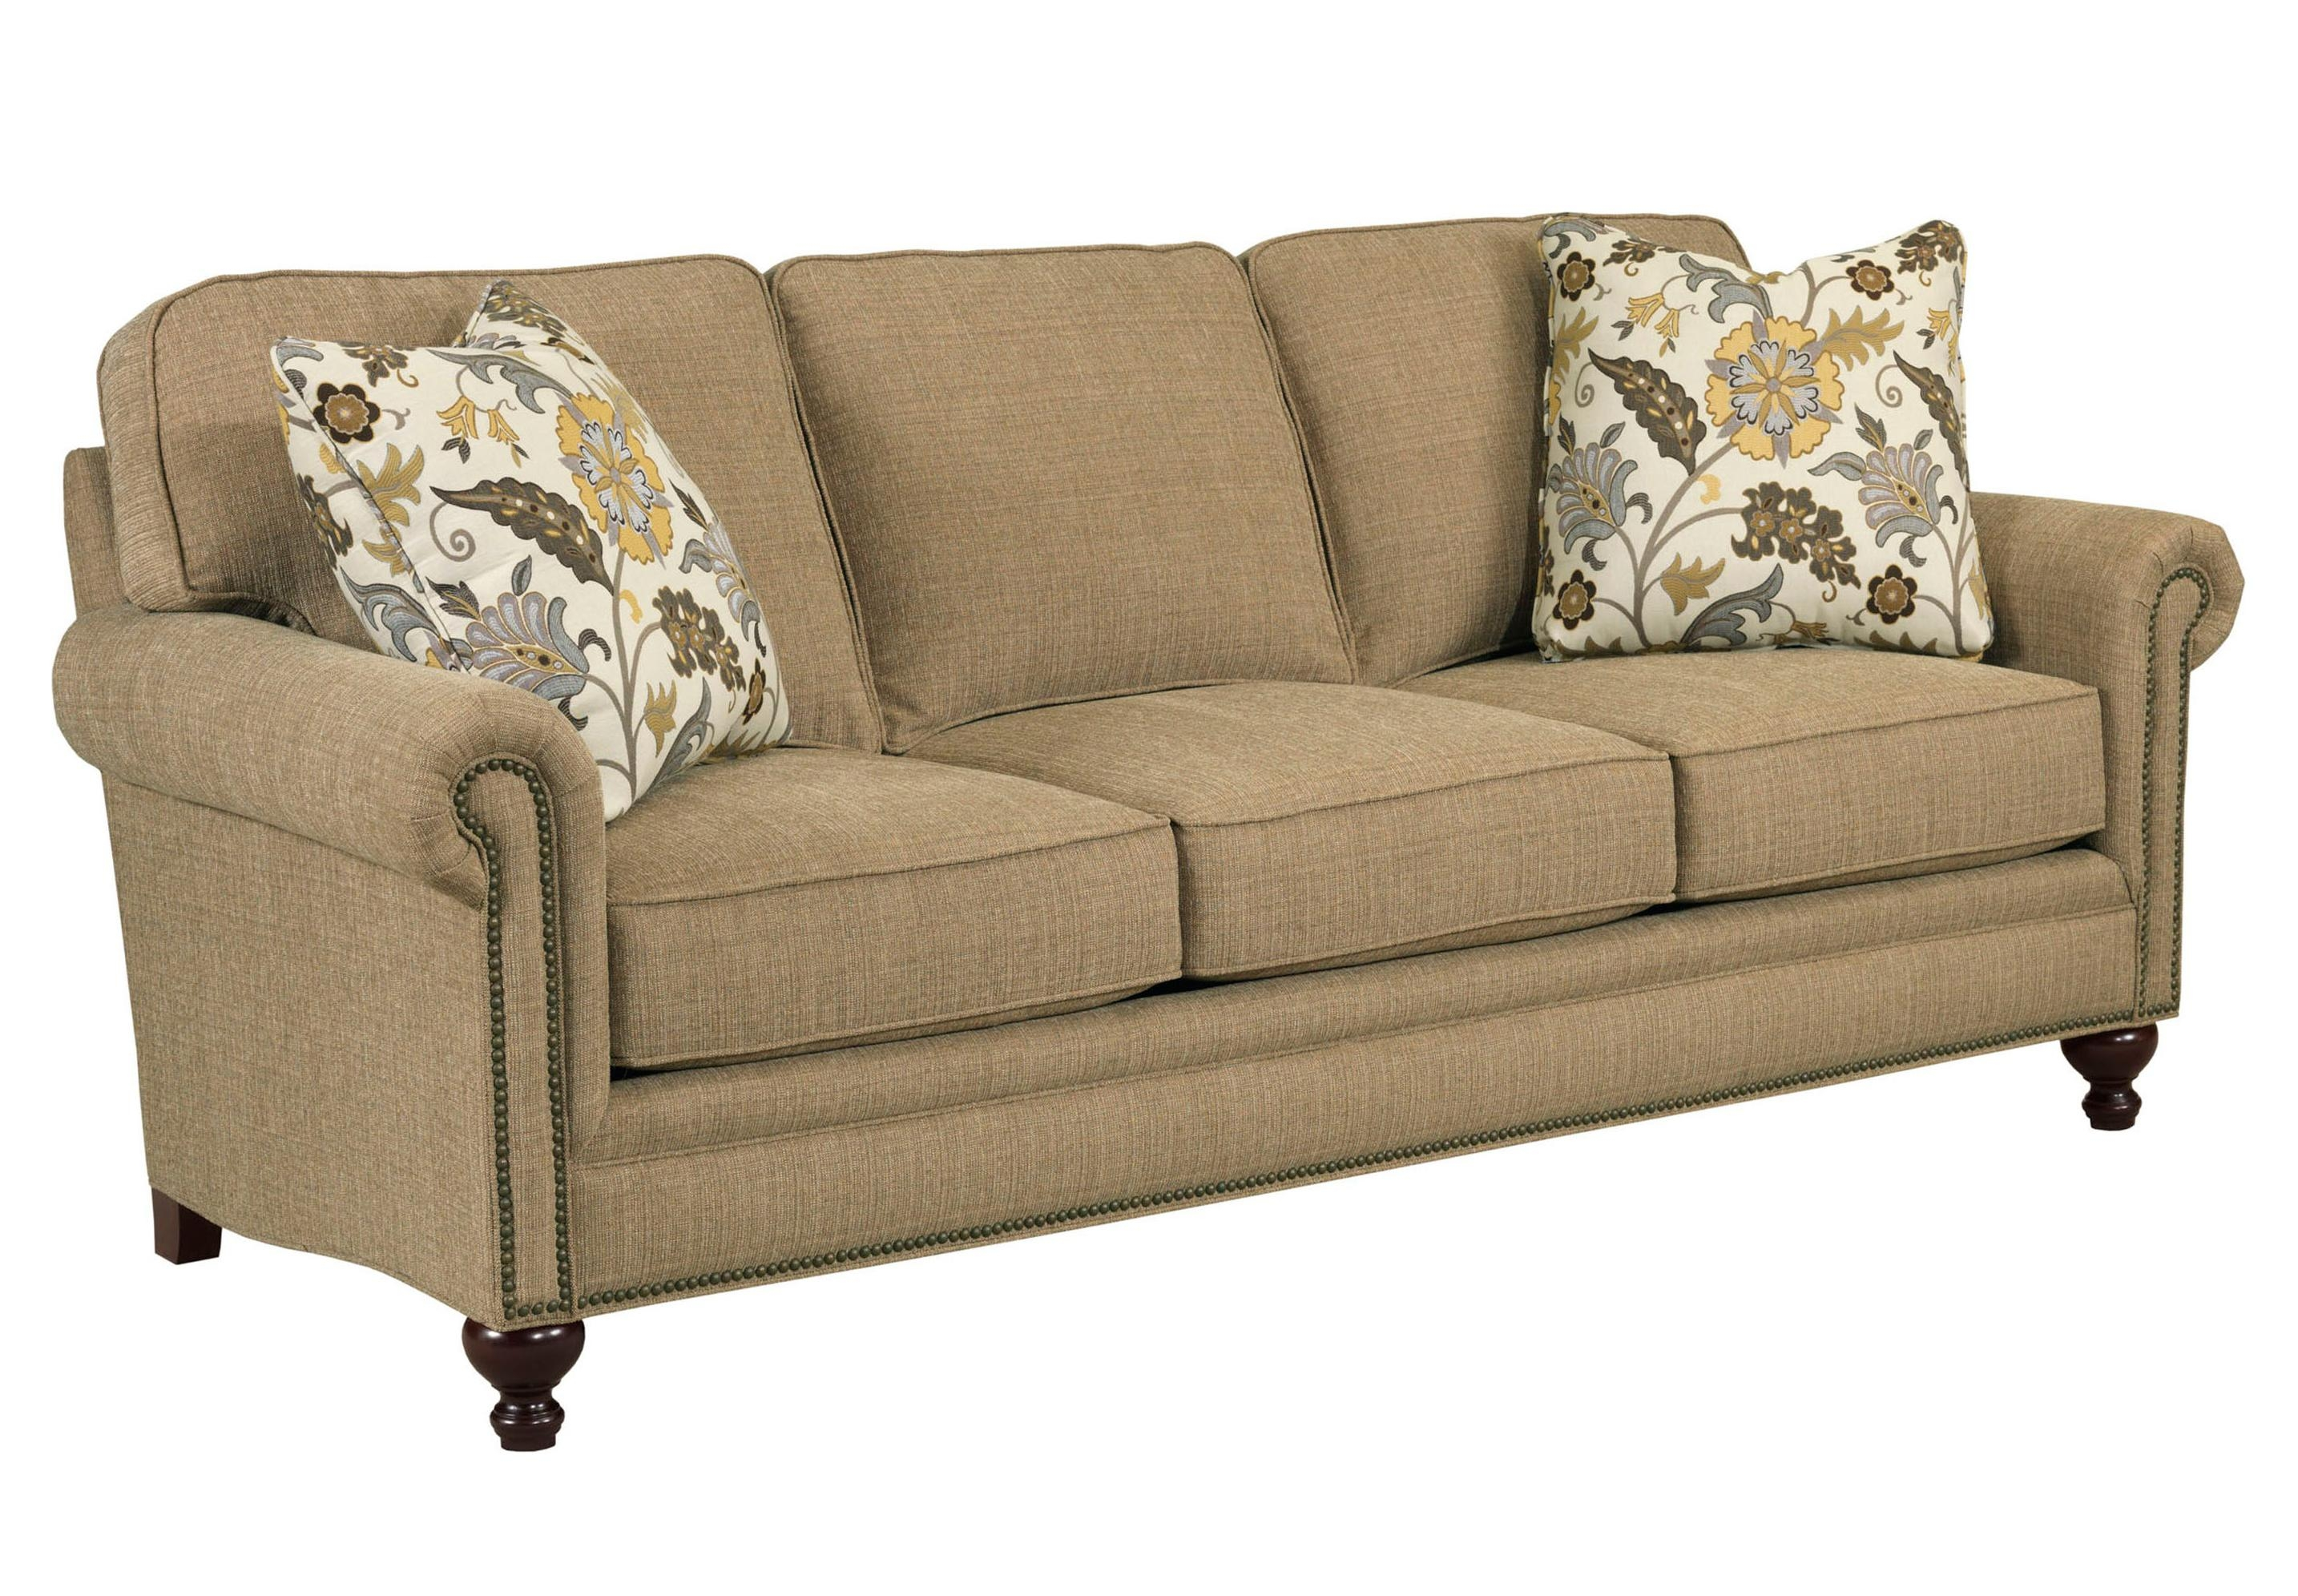 Broyhill Sofa Fabric Samples Sofas Recliners | Deseosol With Regard To Broyhill Larissa Sofas (View 9 of 20)